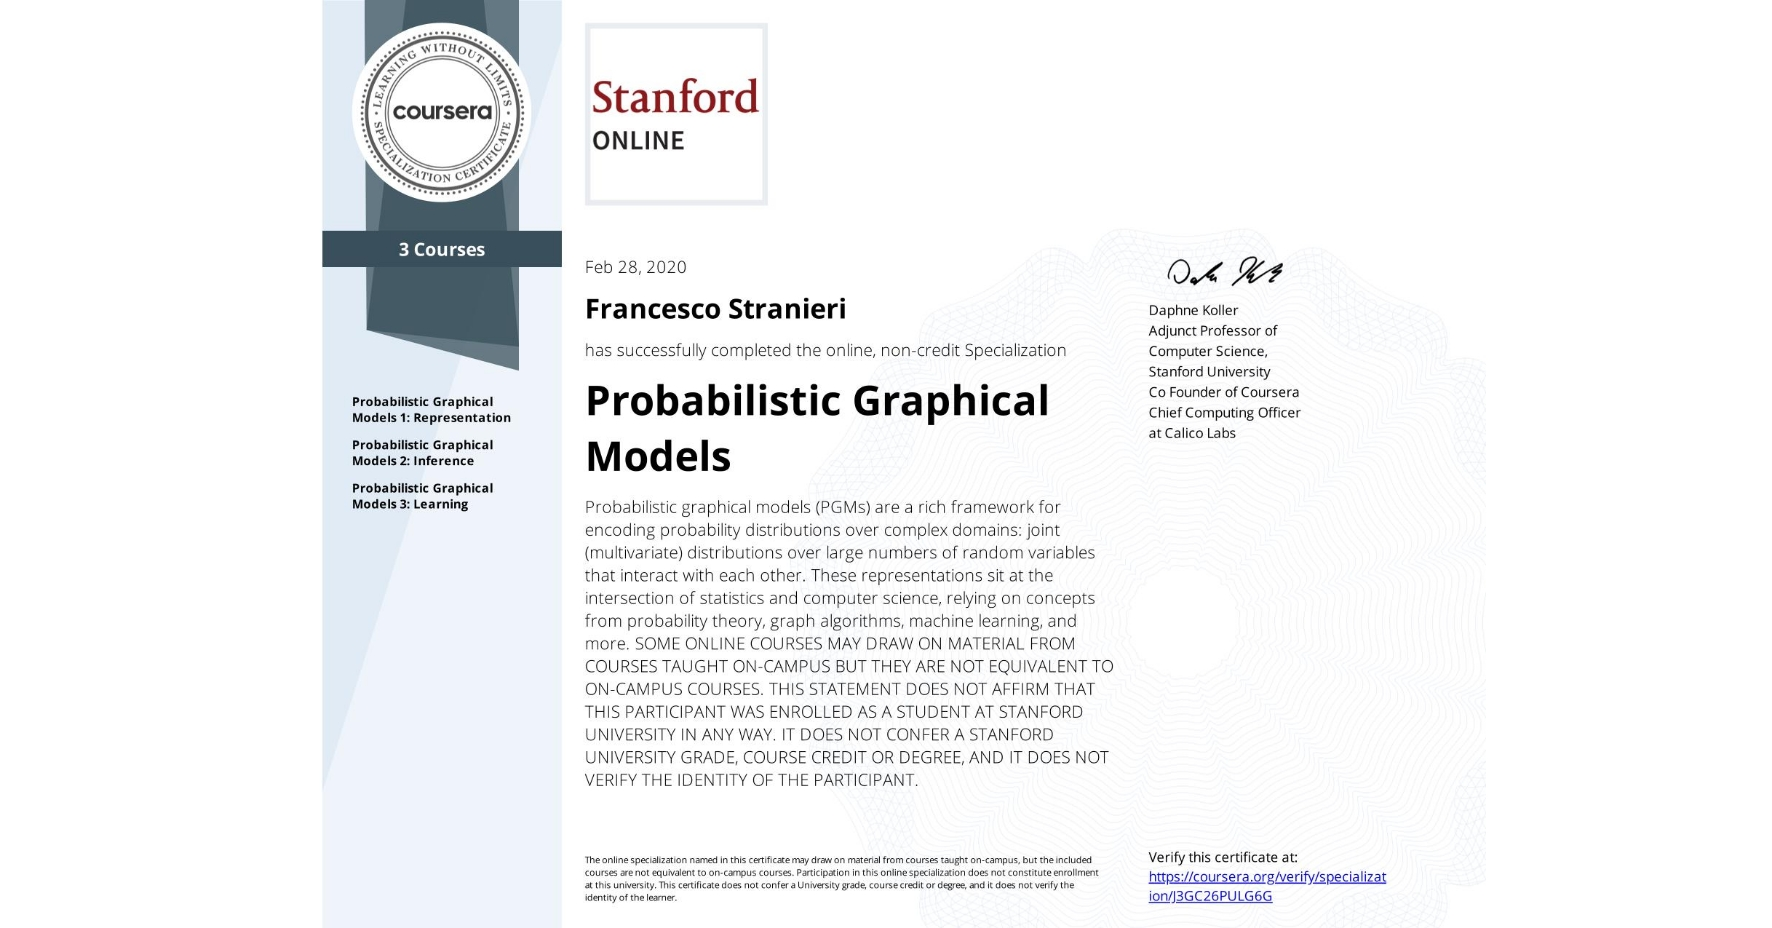 View certificate for Francesco Stranieri, Probabilistic Graphical Models , offered through Coursera. Probabilistic graphical models (PGMs) are a rich framework for encoding probability distributions over complex domains: joint (multivariate) distributions over large numbers of random variables that interact with each other. These representations sit at the intersection of statistics and computer science, relying on concepts from probability theory, graph algorithms, machine learning, and more.    SOME ONLINE COURSES MAY DRAW ON MATERIAL FROM COURSES TAUGHT ON-CAMPUS BUT THEY ARE NOT EQUIVALENT TO ON-CAMPUS COURSES. THIS STATEMENT DOES NOT AFFIRM THAT THIS PARTICIPANT WAS ENROLLED AS A STUDENT AT STANFORD UNIVERSITY IN ANY WAY. IT DOES NOT CONFER A STANFORD UNIVERSITY GRADE, COURSE CREDIT OR DEGREE, AND IT DOES NOT VERIFY THE IDENTITY OF THE PARTICIPANT.